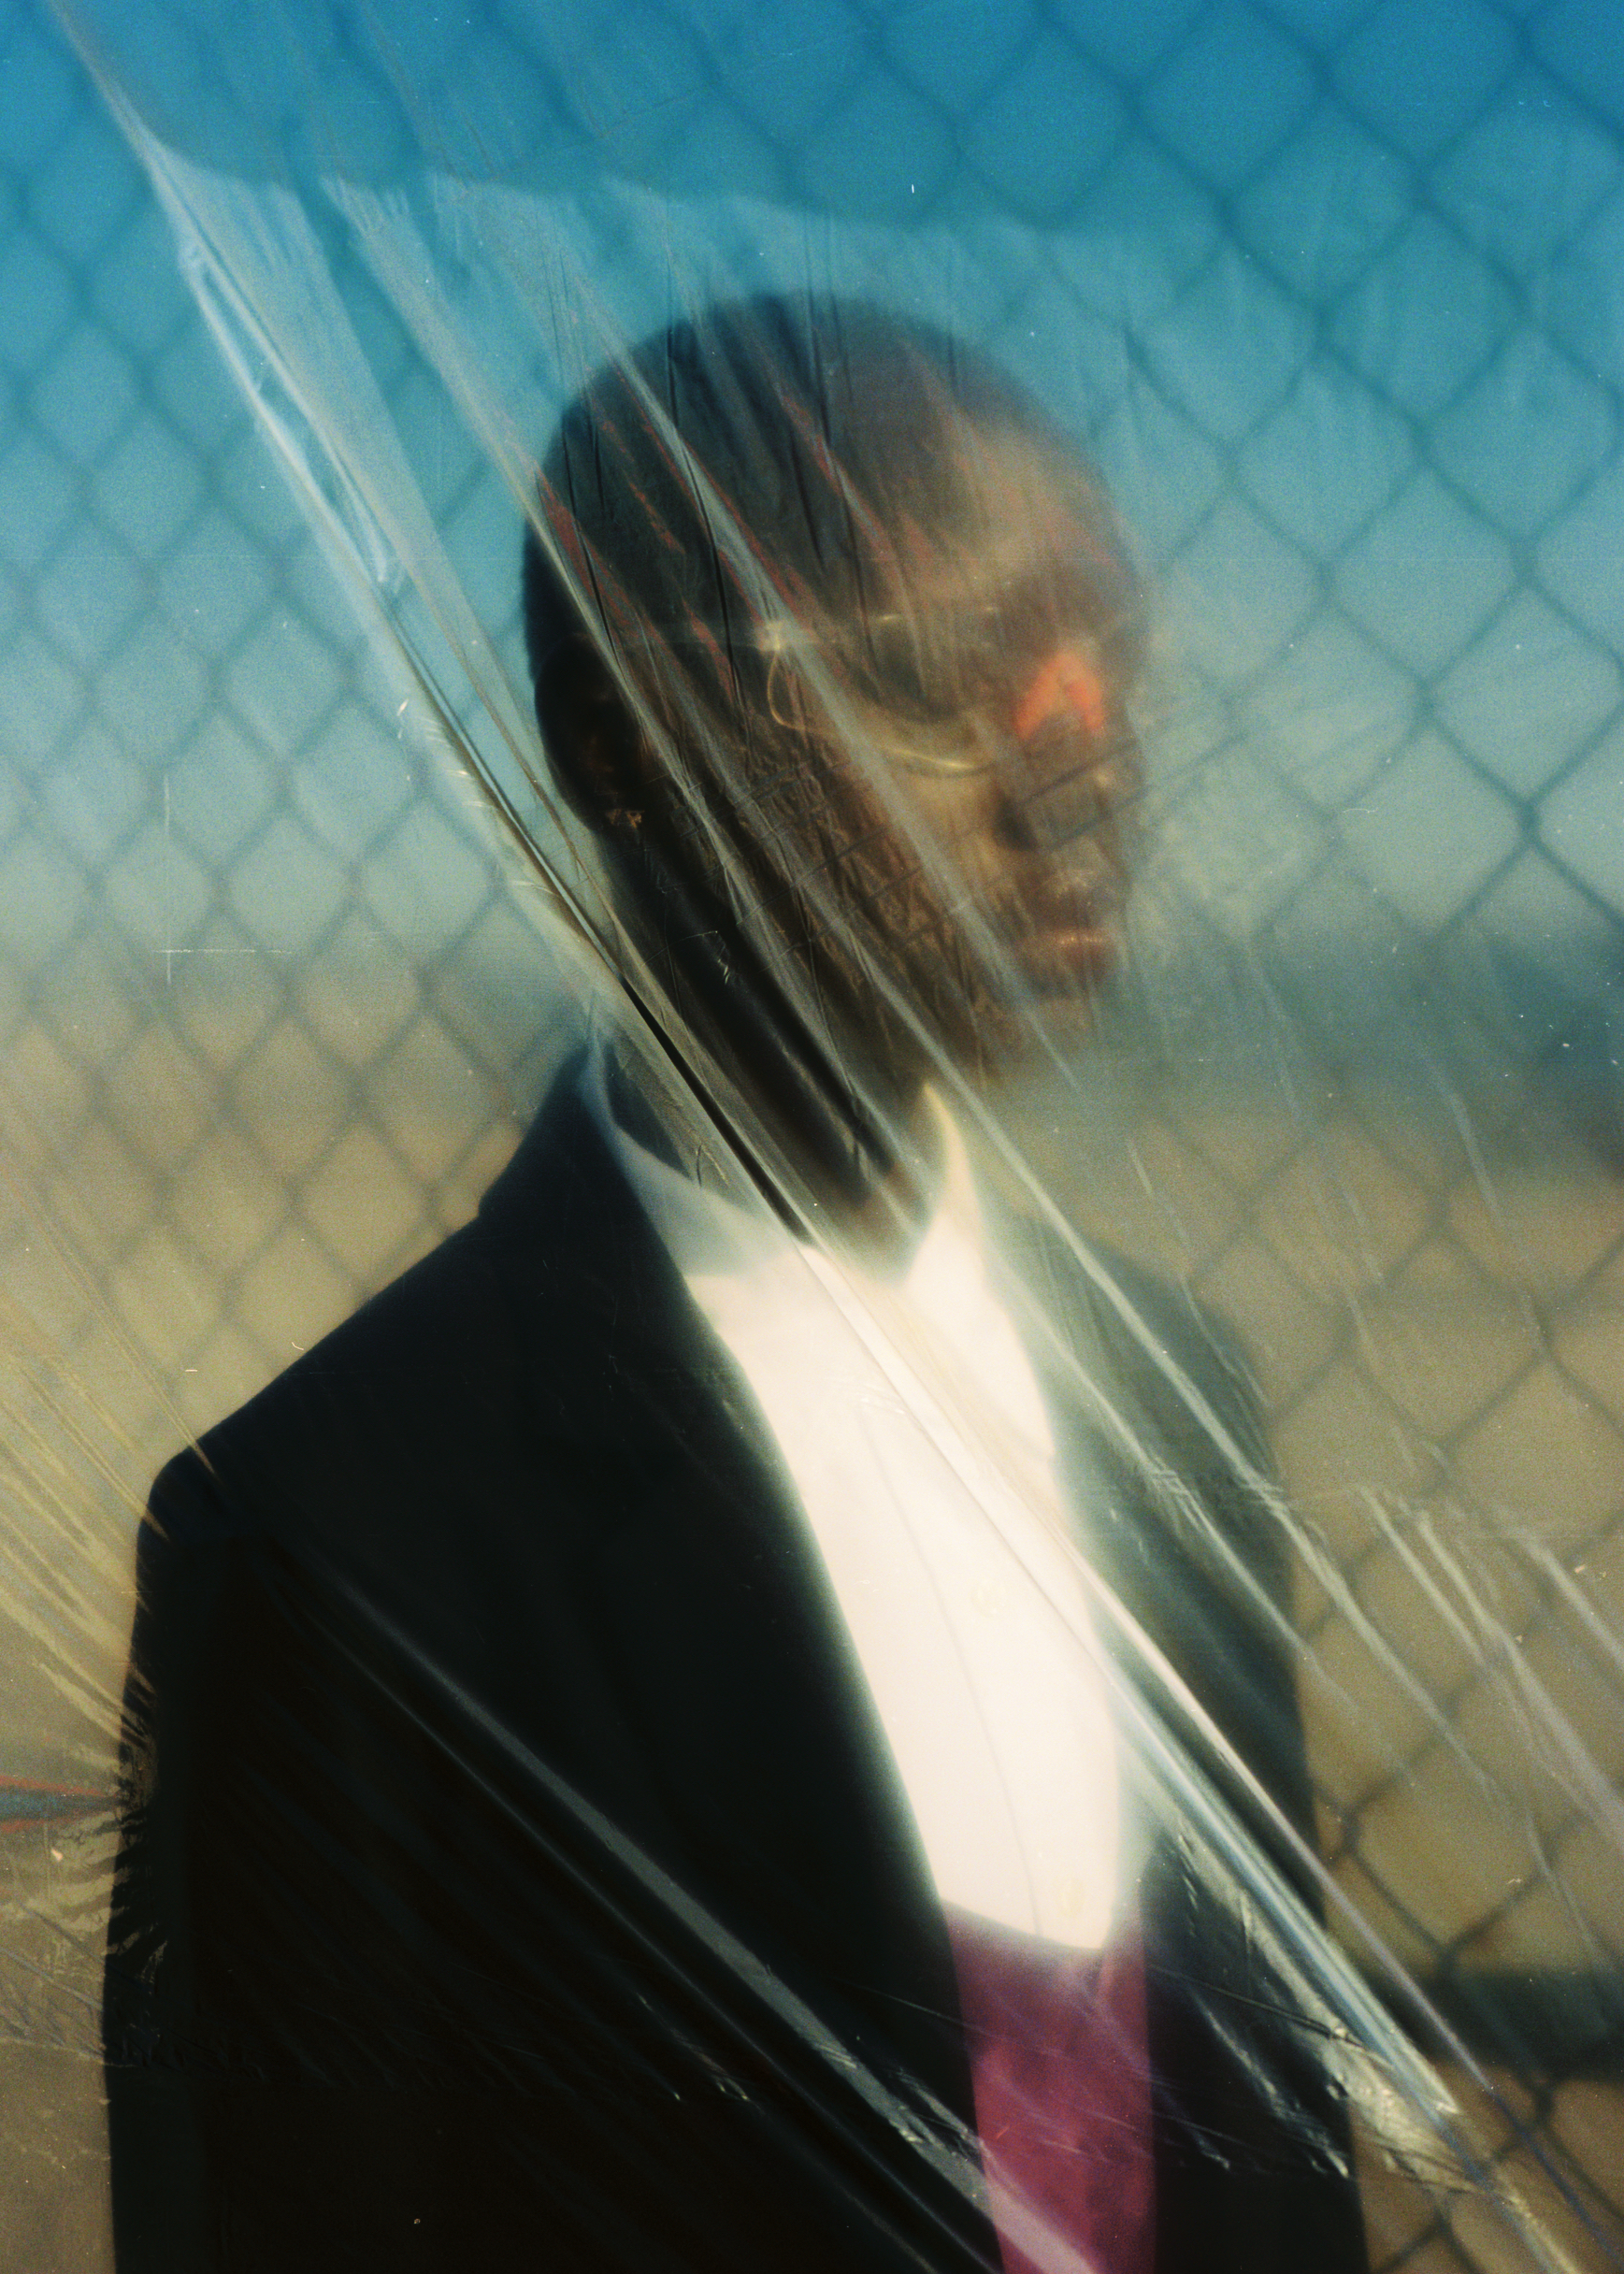 """light is calling"" - ajak deng photographed by emon toufanian for phosphenes #5"